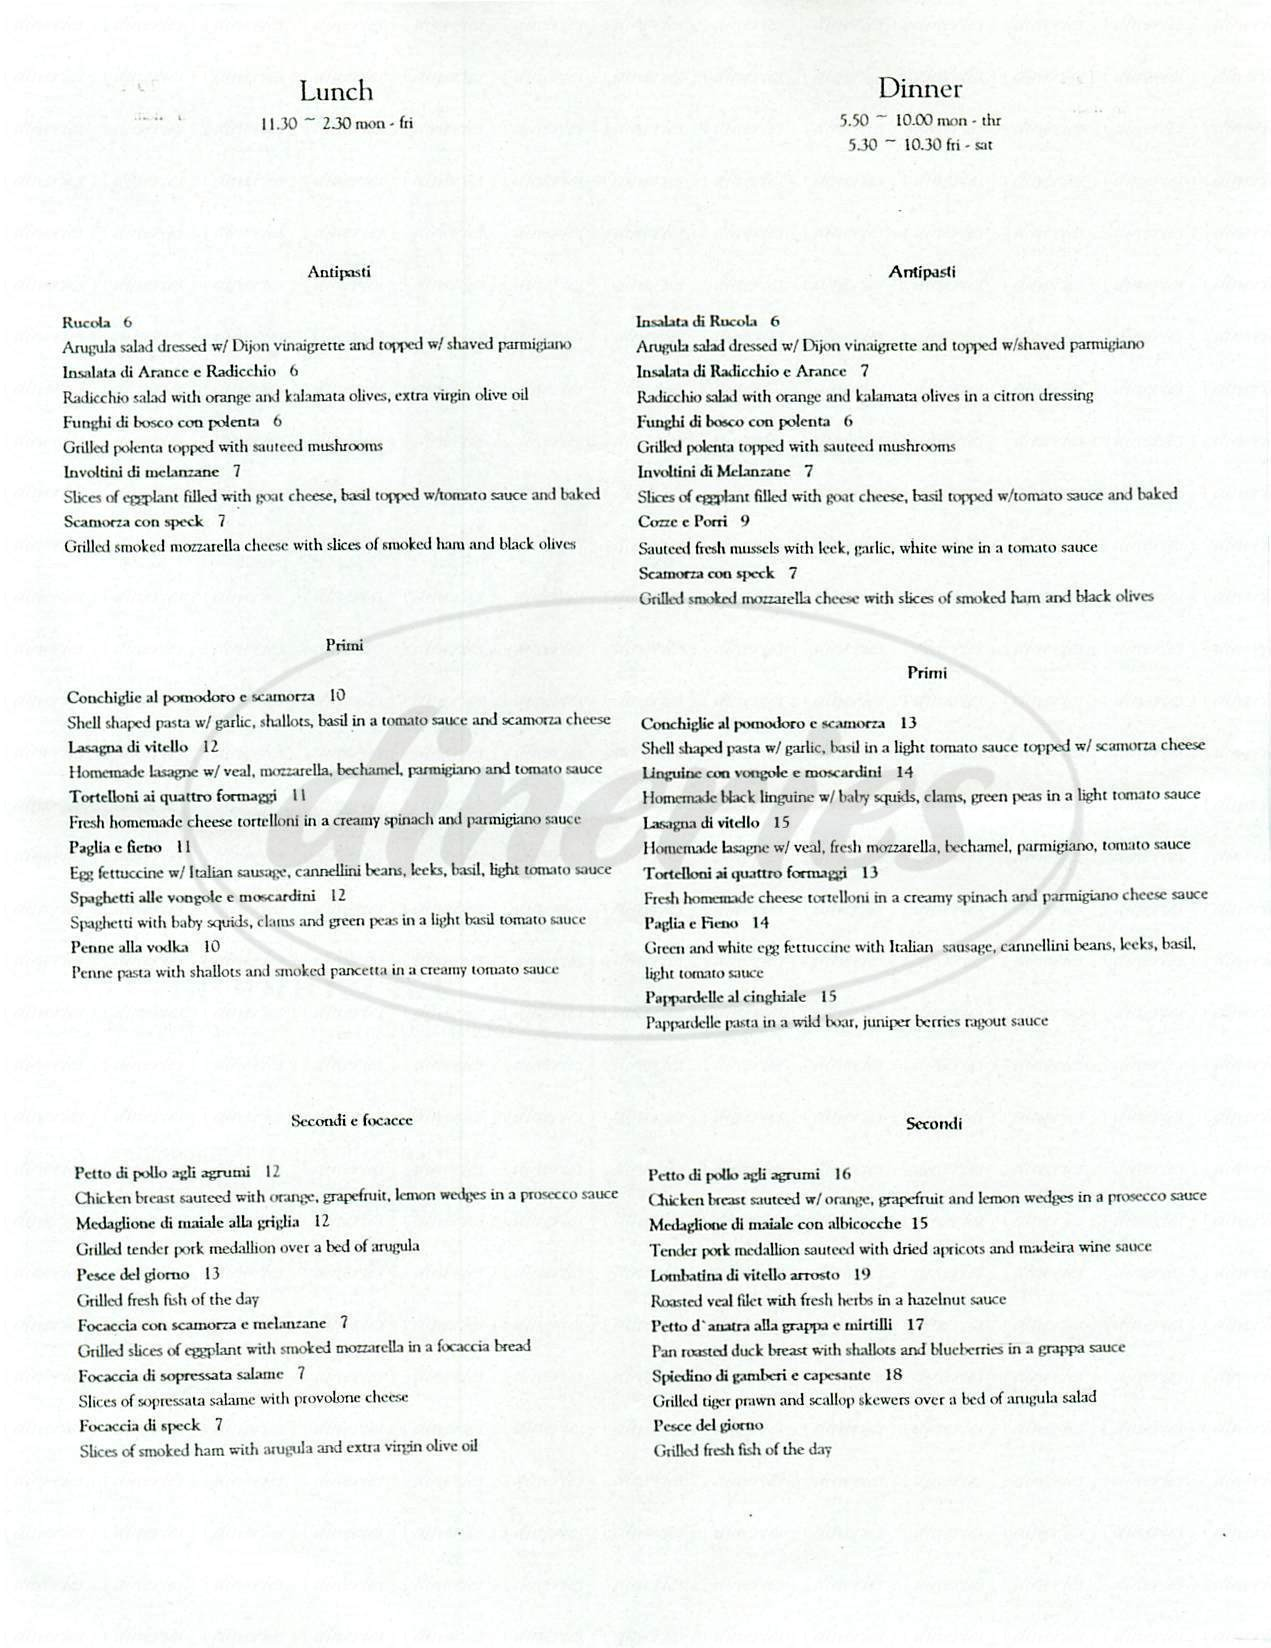 menu for La Gondola